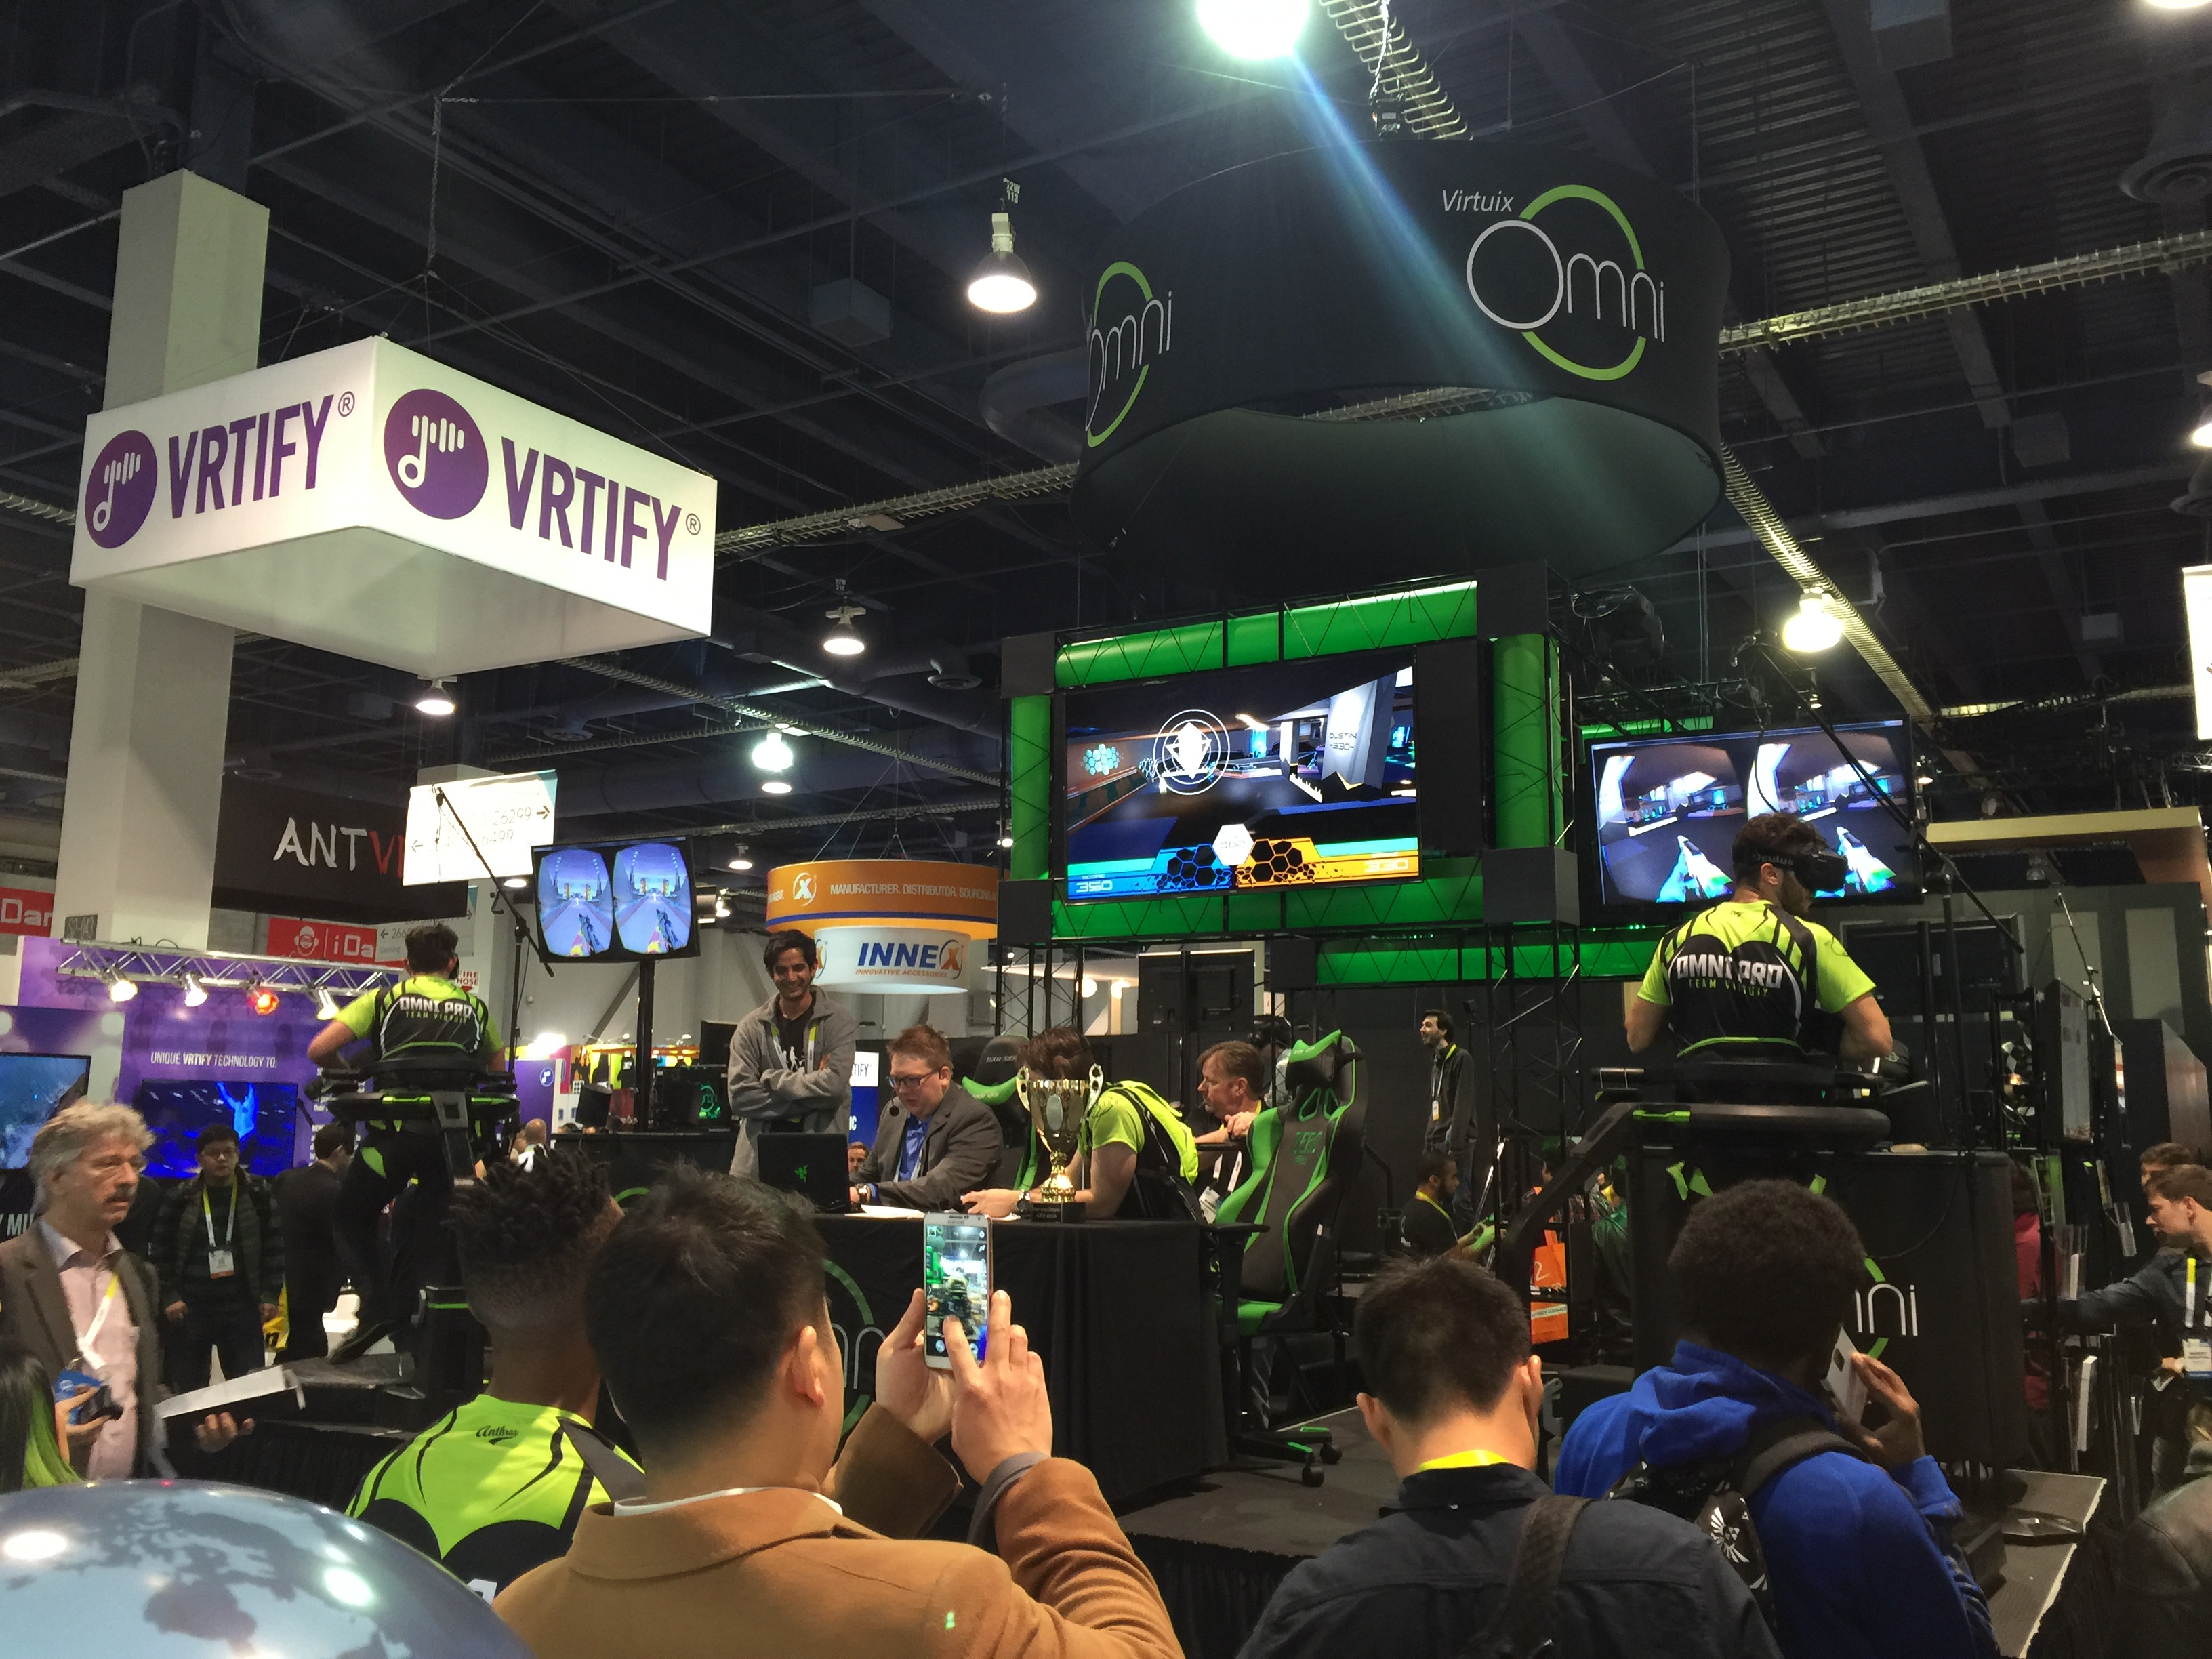 At CES 2016, Virtuix held eSports competition on its Omni with gamers playing Omni Arena in VR.